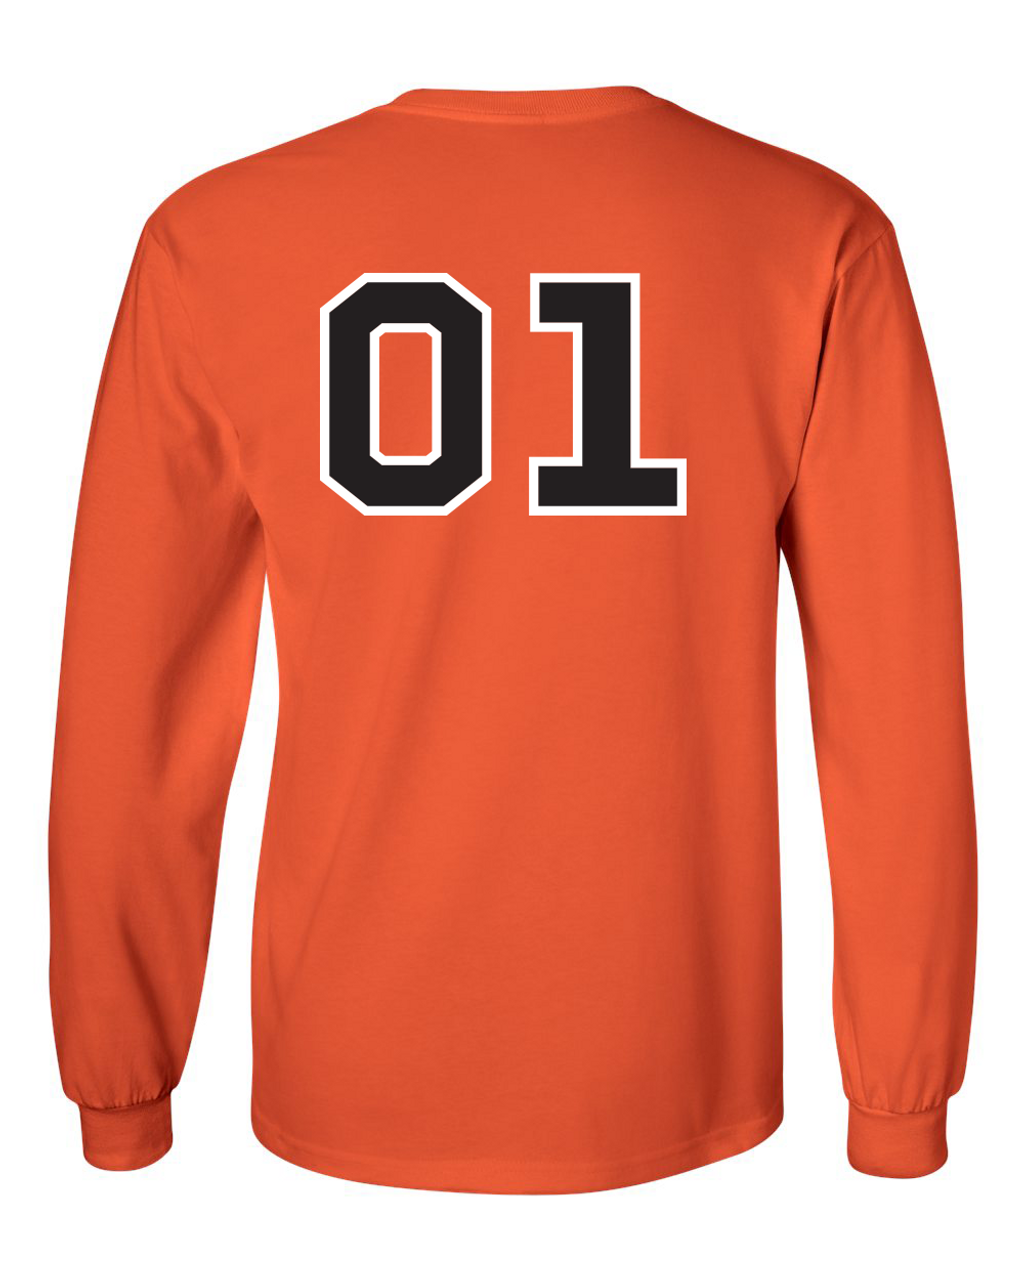 Cooter's Original 01 Youth Long Sleeve Tee